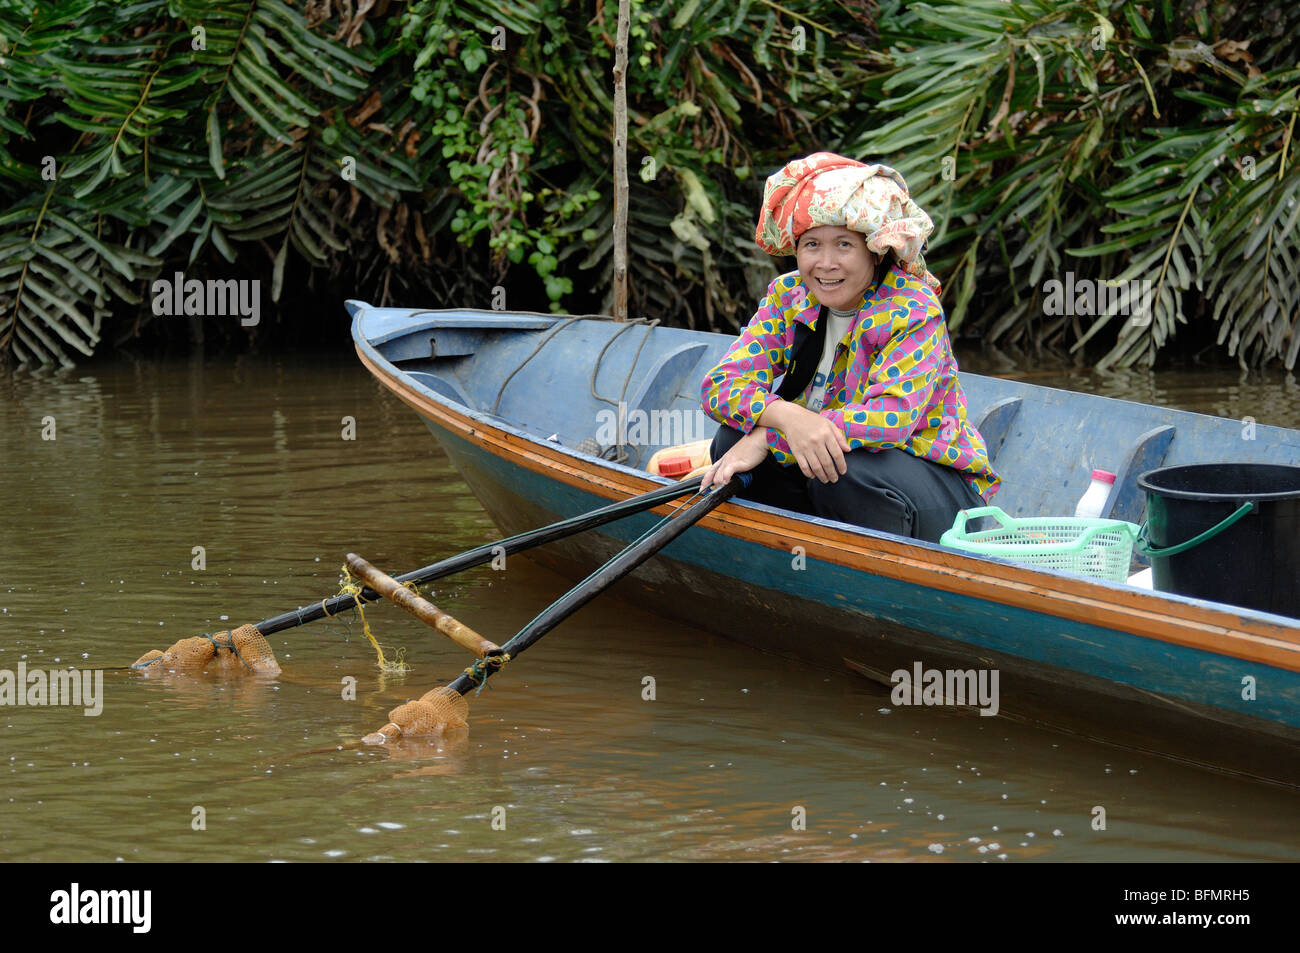 Smiling Sabah Fisher Woman Shrimp Fishing from Boat with Net in Klias Mangrove Wetlands, Sabah, Malaysia, Borneo - Stock Image